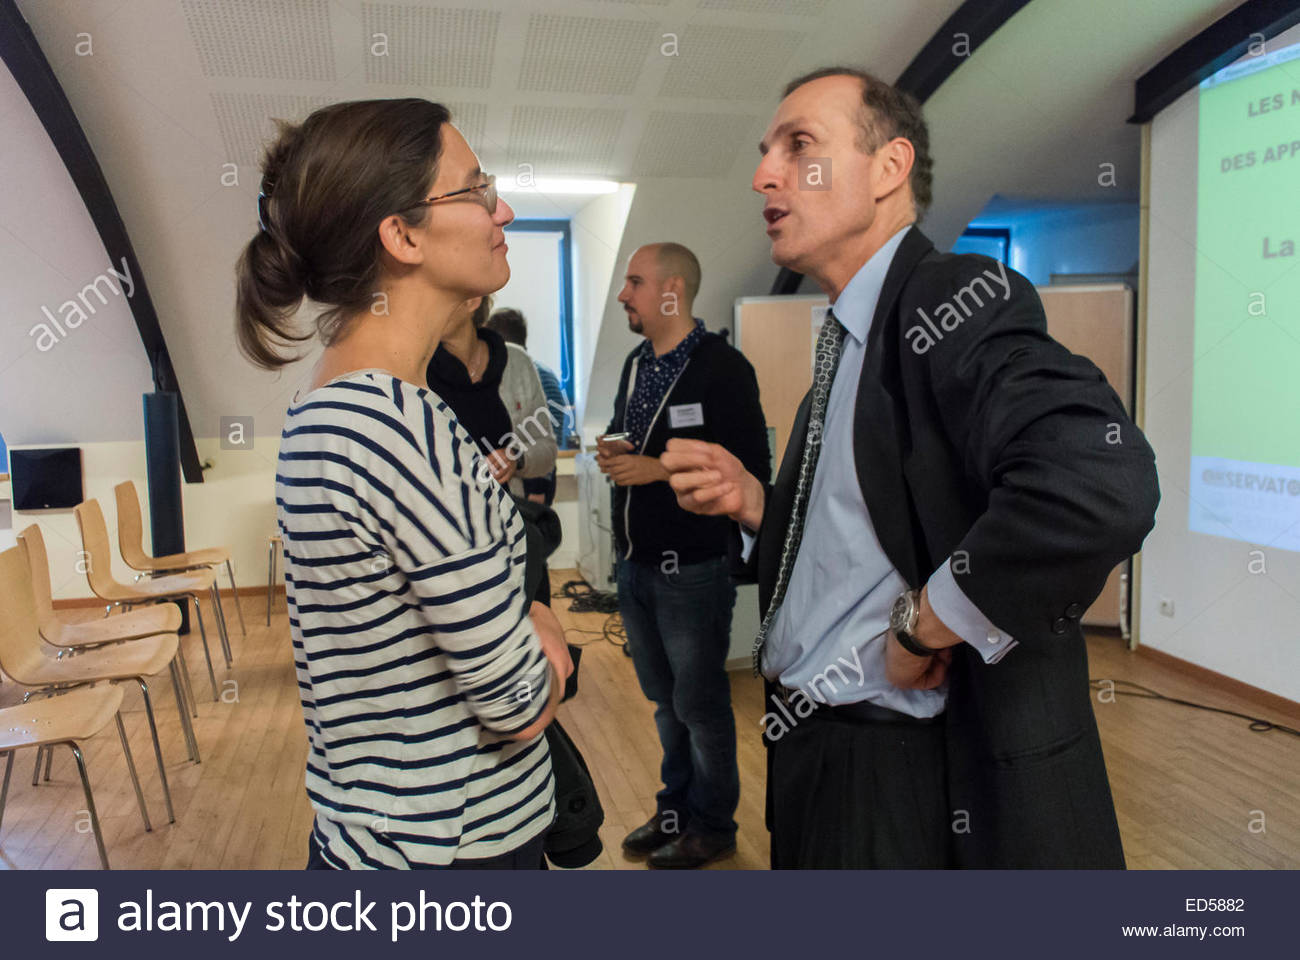 Brussels, Belgium, HIV AIDS Prevention Conference on PrEP, Pre-exposure prophylaxis, L'Observatoire du Sida - Stock Image